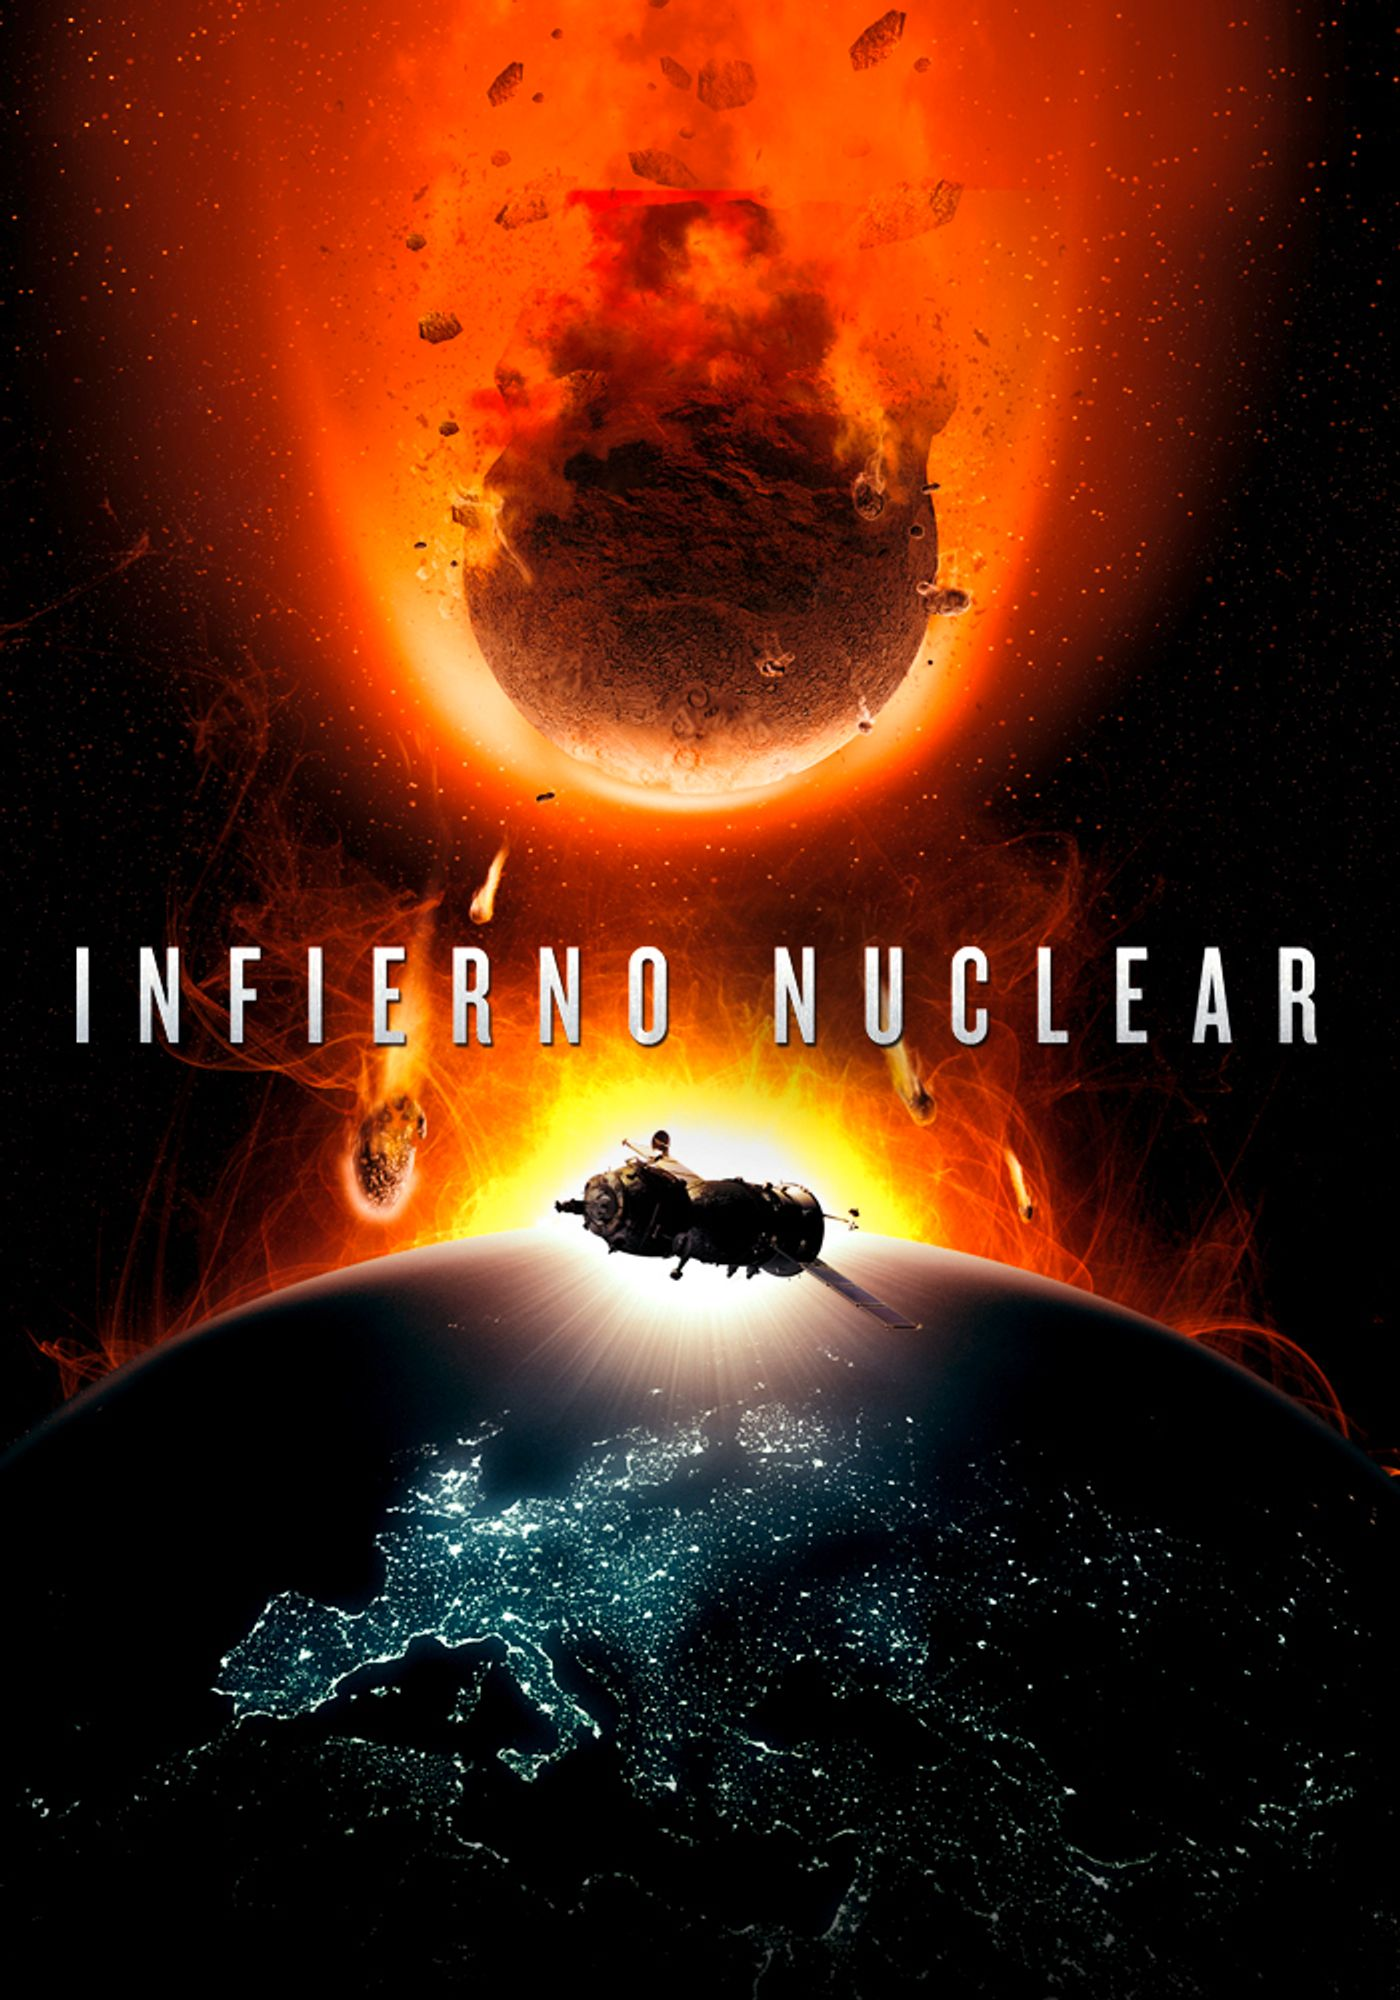 Infierno nuclear